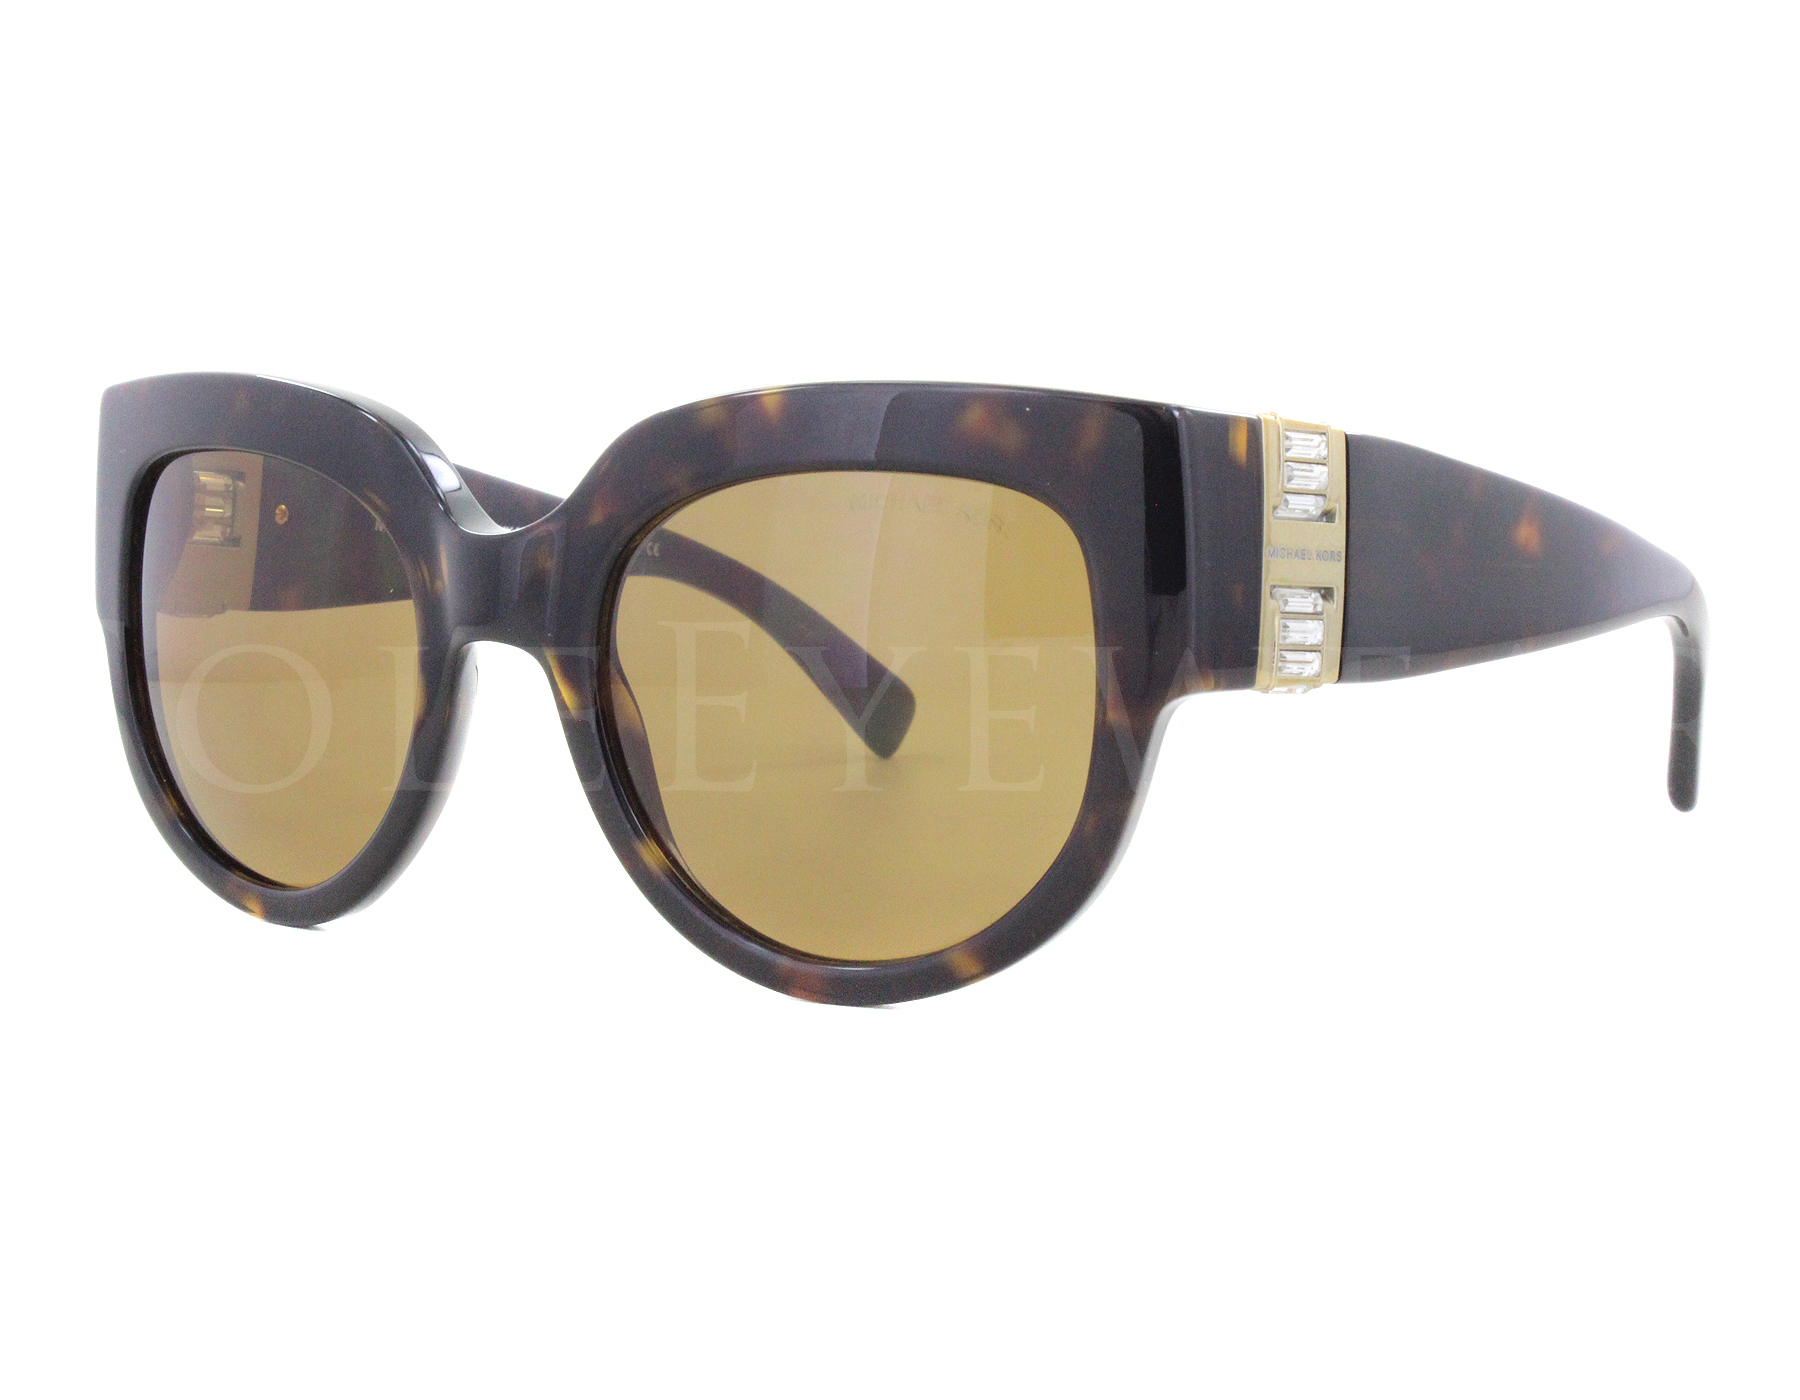 eacbfbe2f8 Details about NEW Michael Kors MK2003B 300673 2003 Villefranche Tortoise  Brown Sunglasses